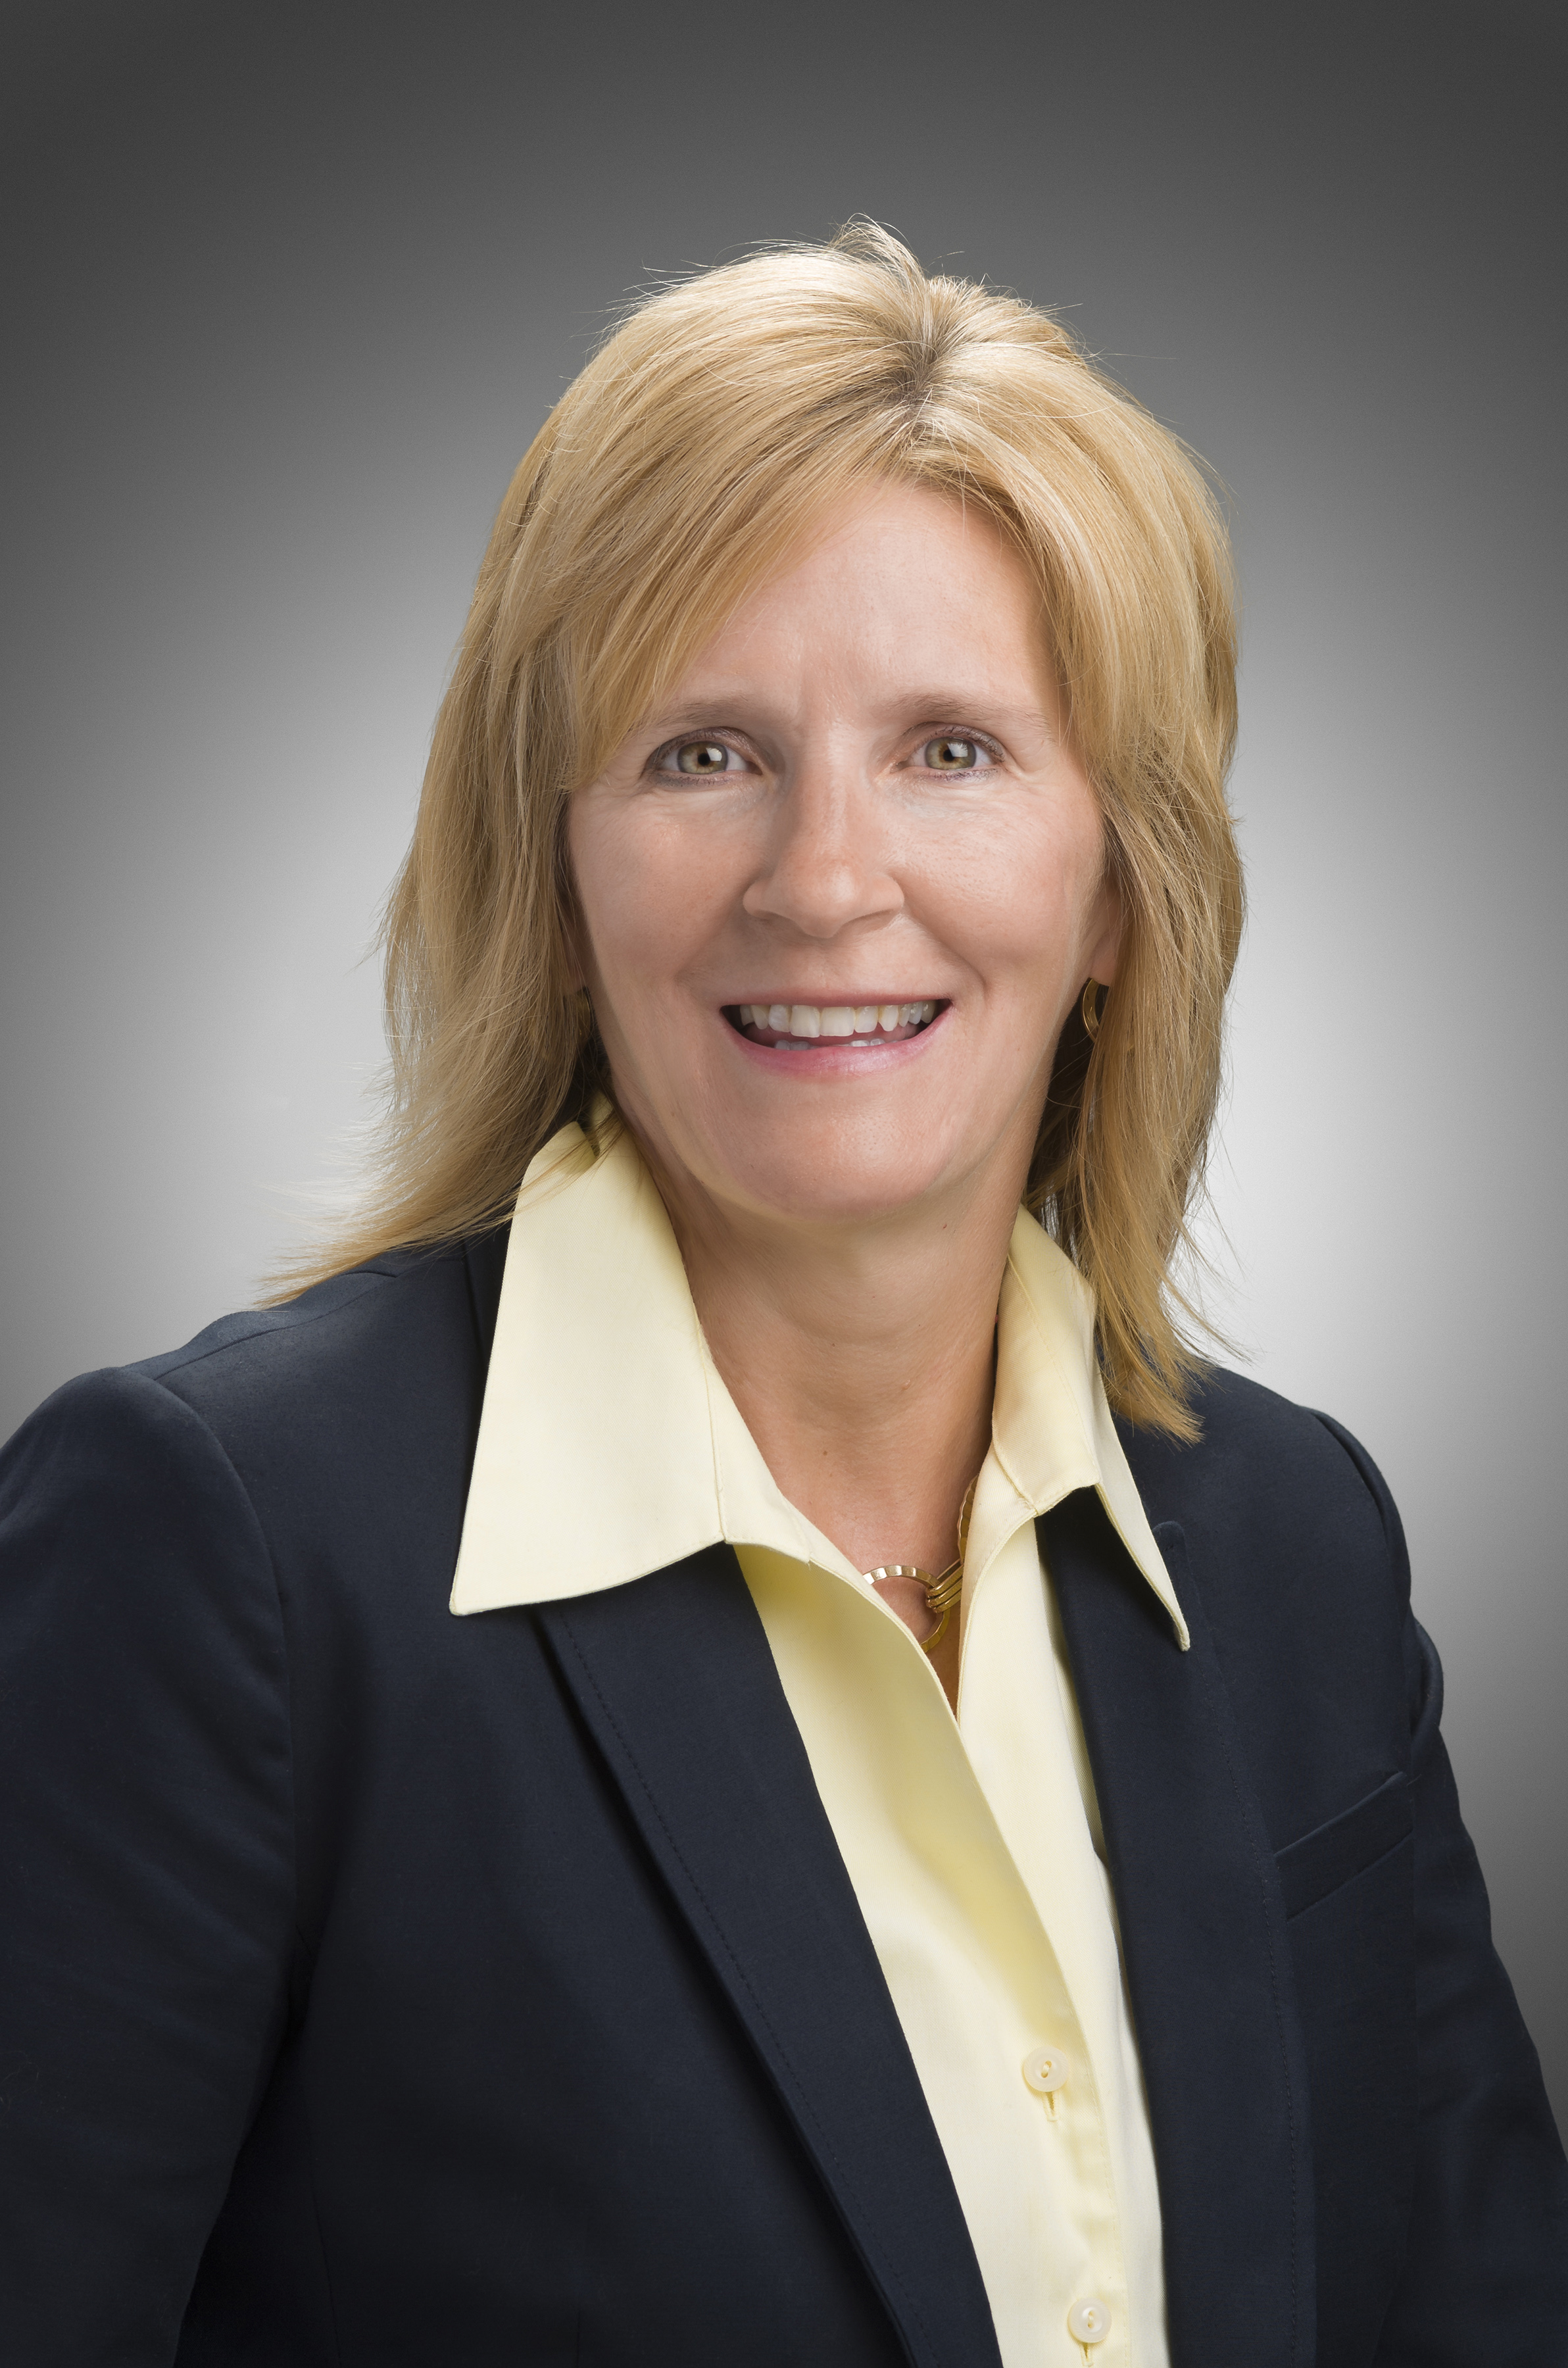 Anaren Hires Diane E Moore as New Vice President of Human